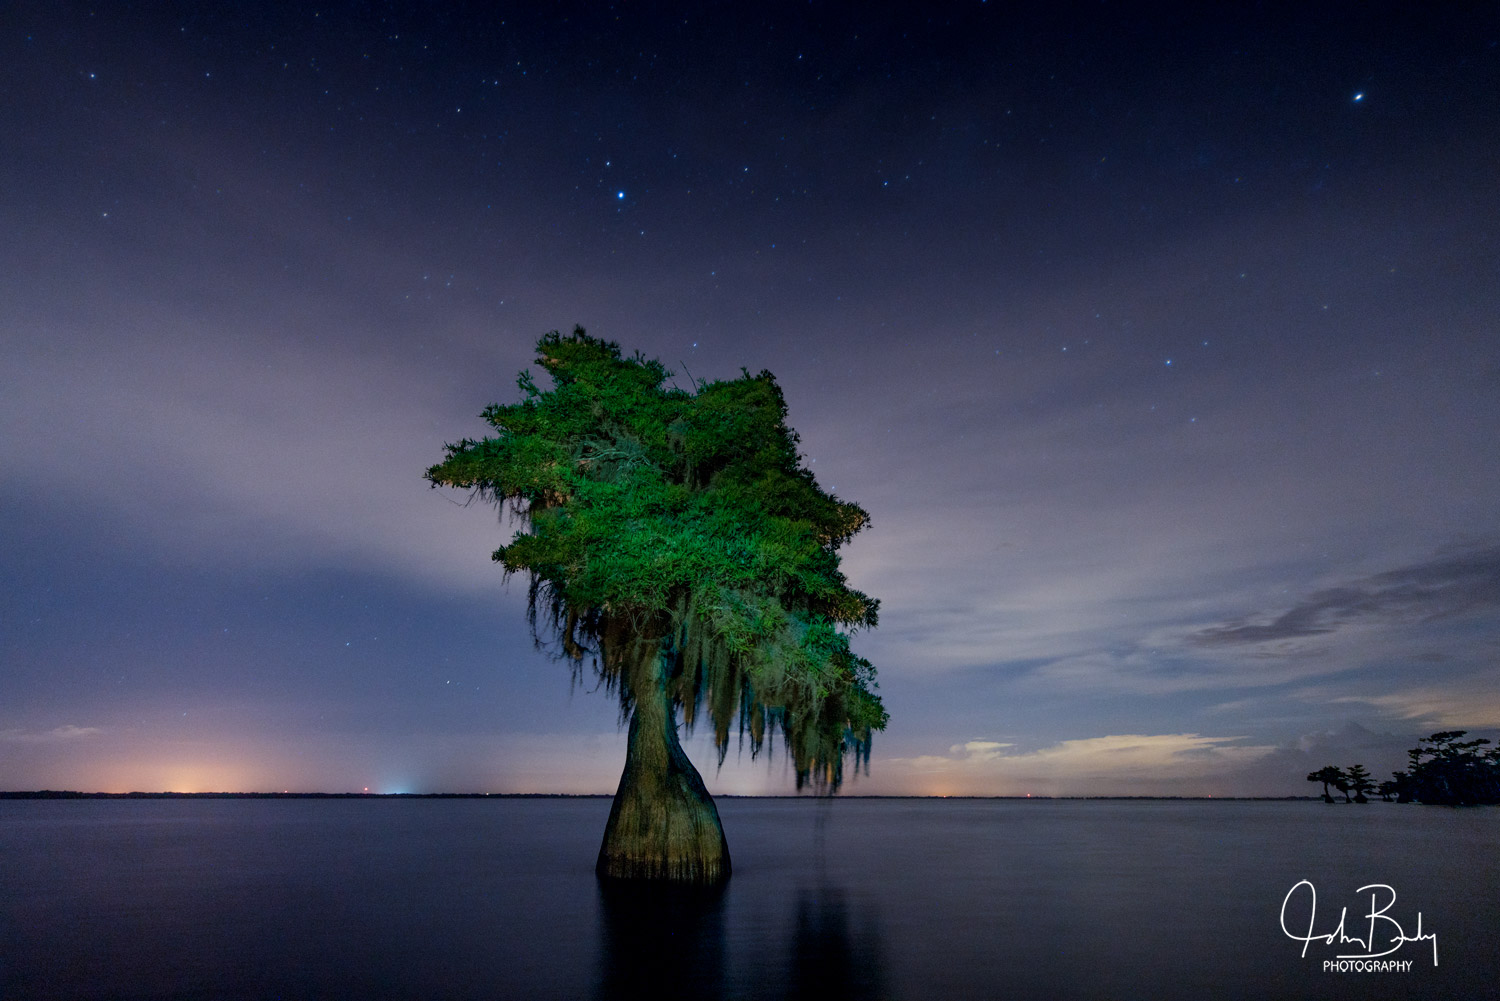 florida, swamps, lakes, creek, blue cypress, trees standing in water, stars,, photo